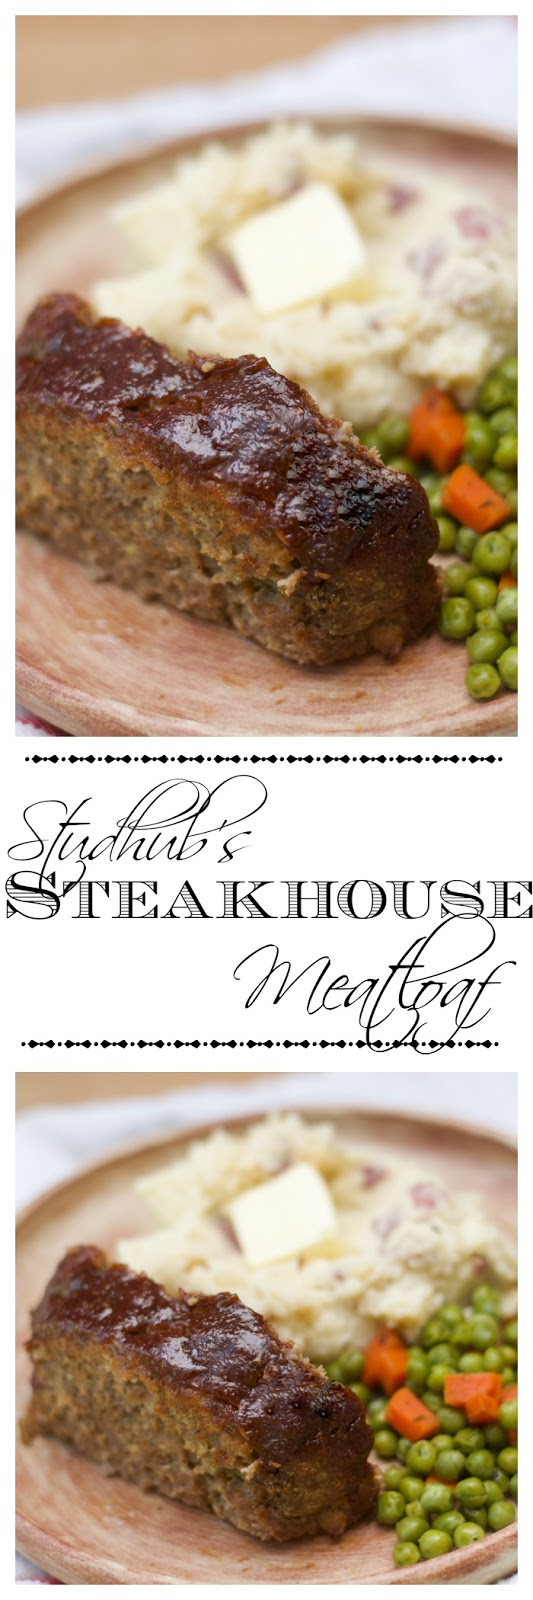 Studhub\'s Steakhouse Meatloaf Recipe - ~The Kitchen Wife~